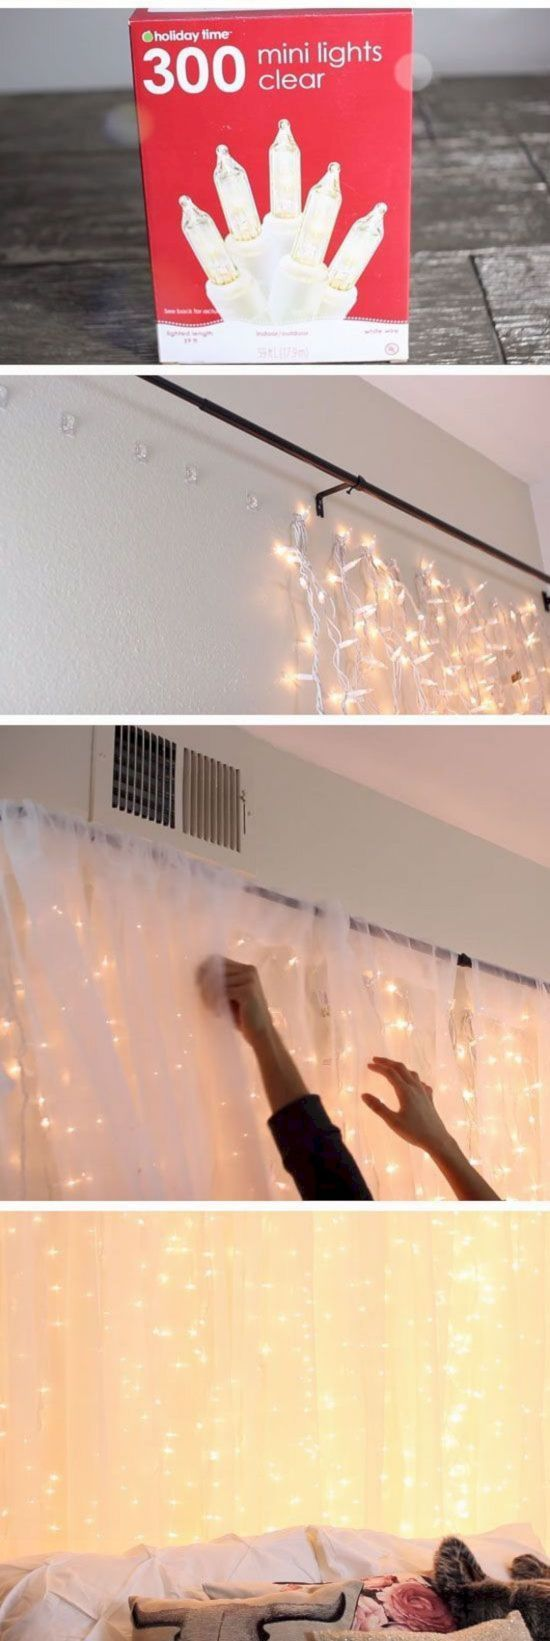 10 Cute DIY Ideas That Will Make Your Home Adorable #diyhomedecor